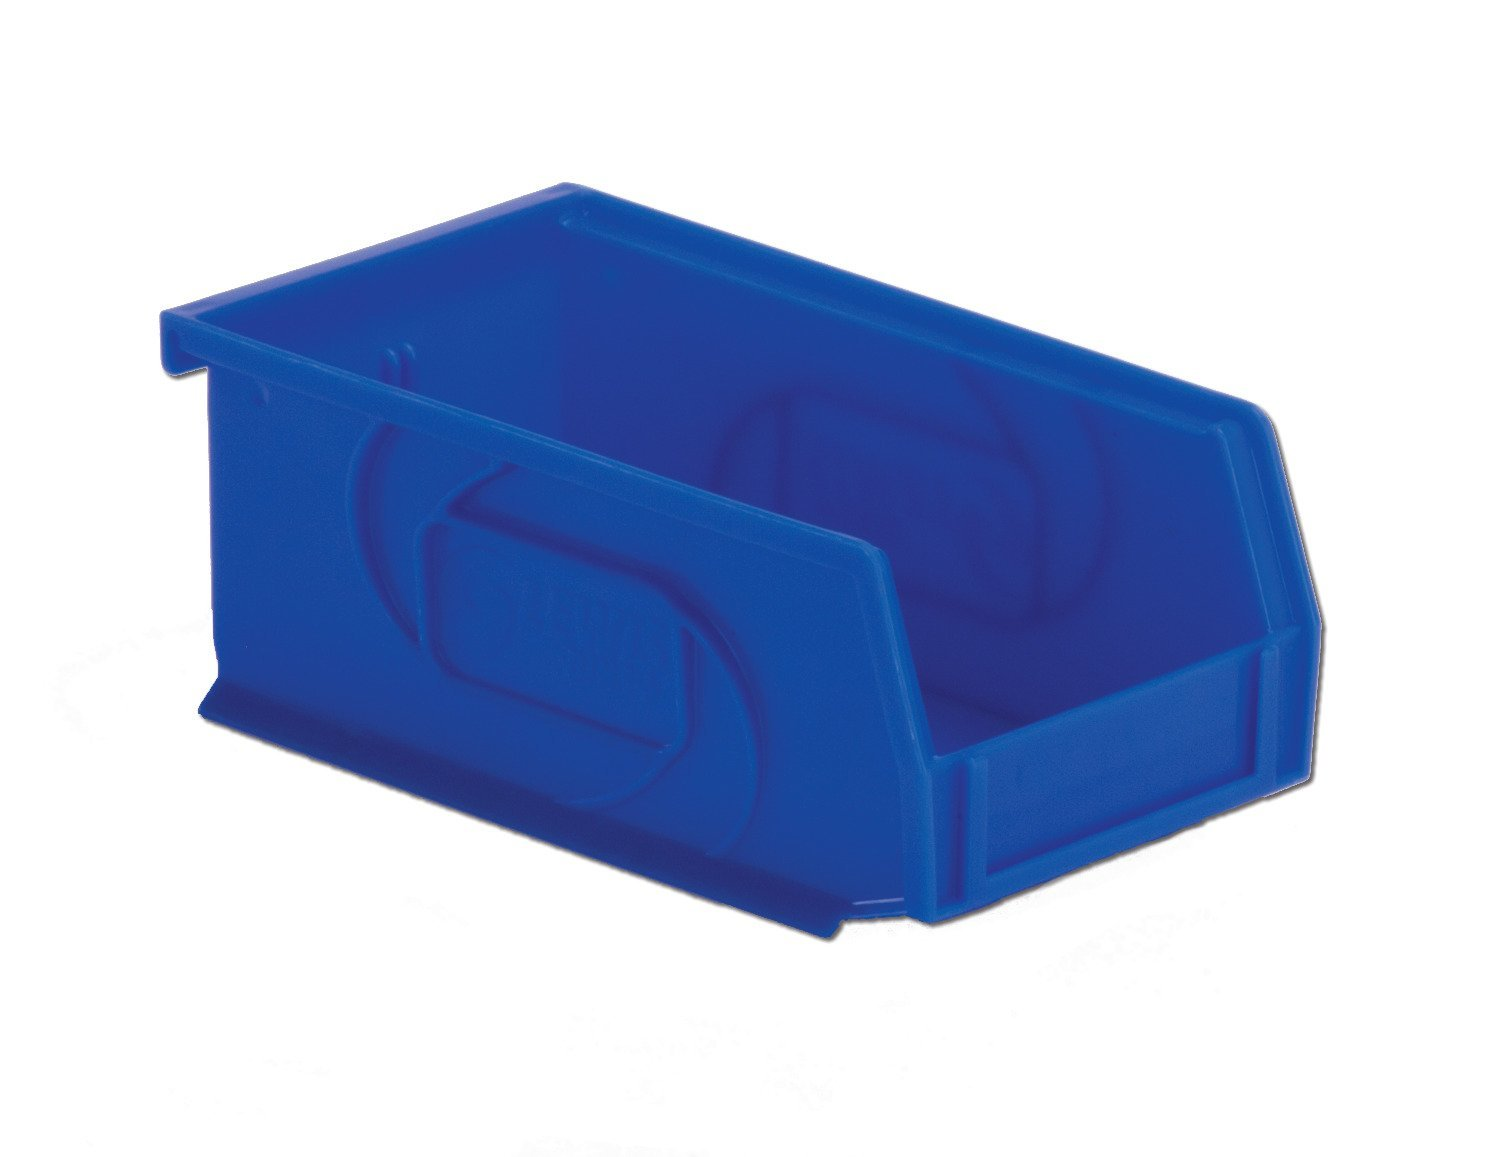 PB1811-10 | 18x11x10 Parts Bin | Pack of 4